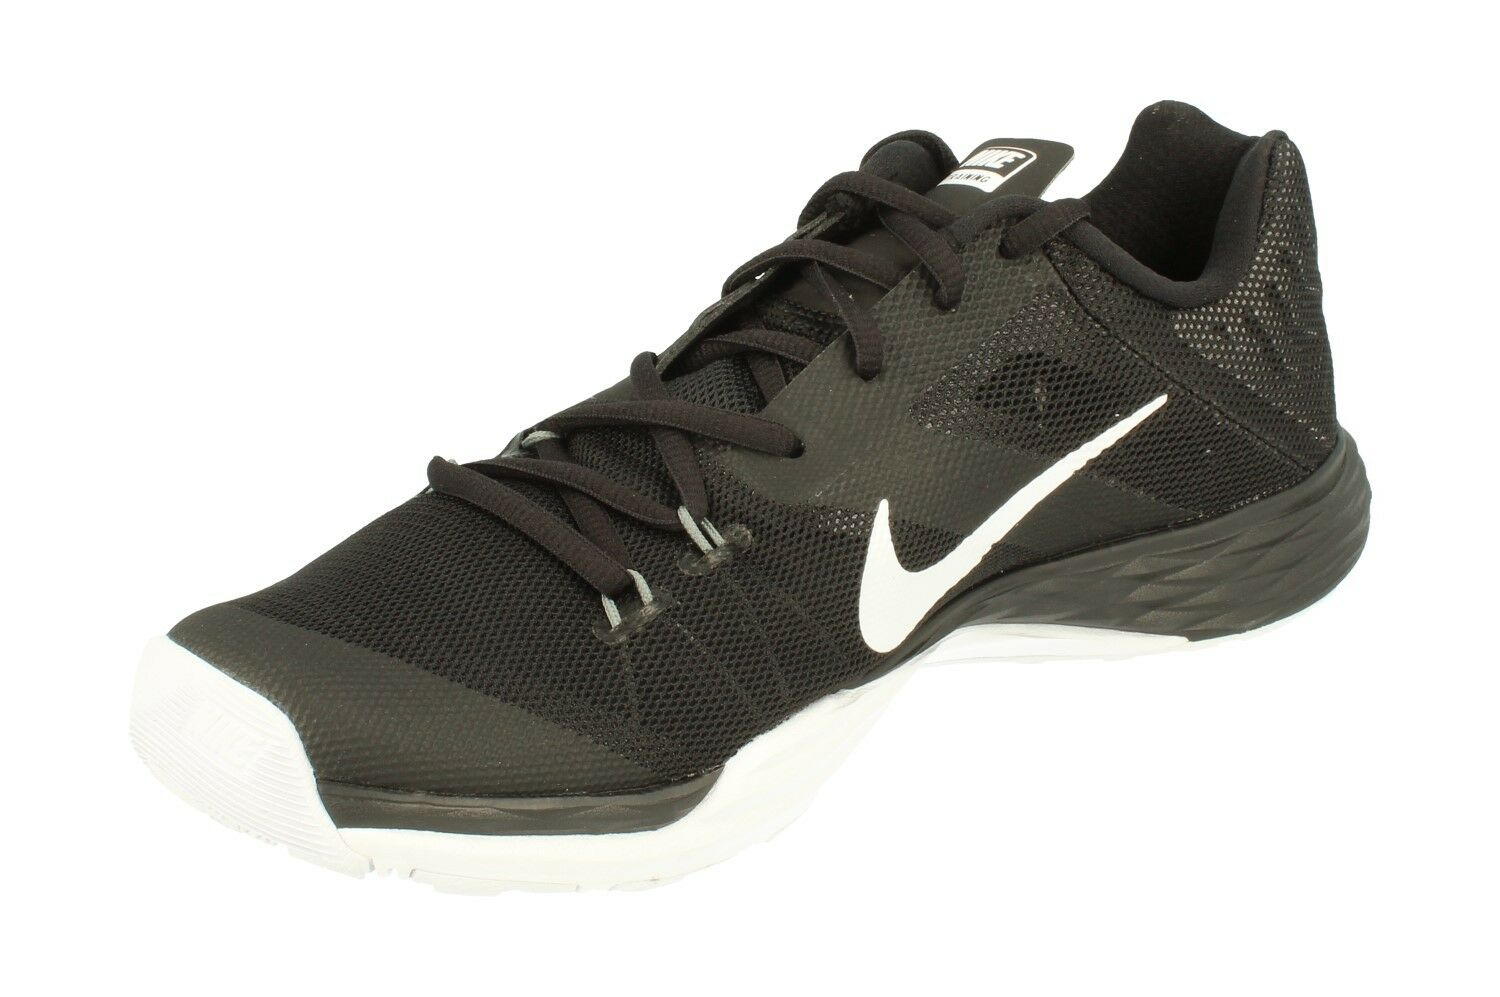 Nike Train Prime Iron DF Homme Running Trainers 832219 001 Sneakers Chaussures